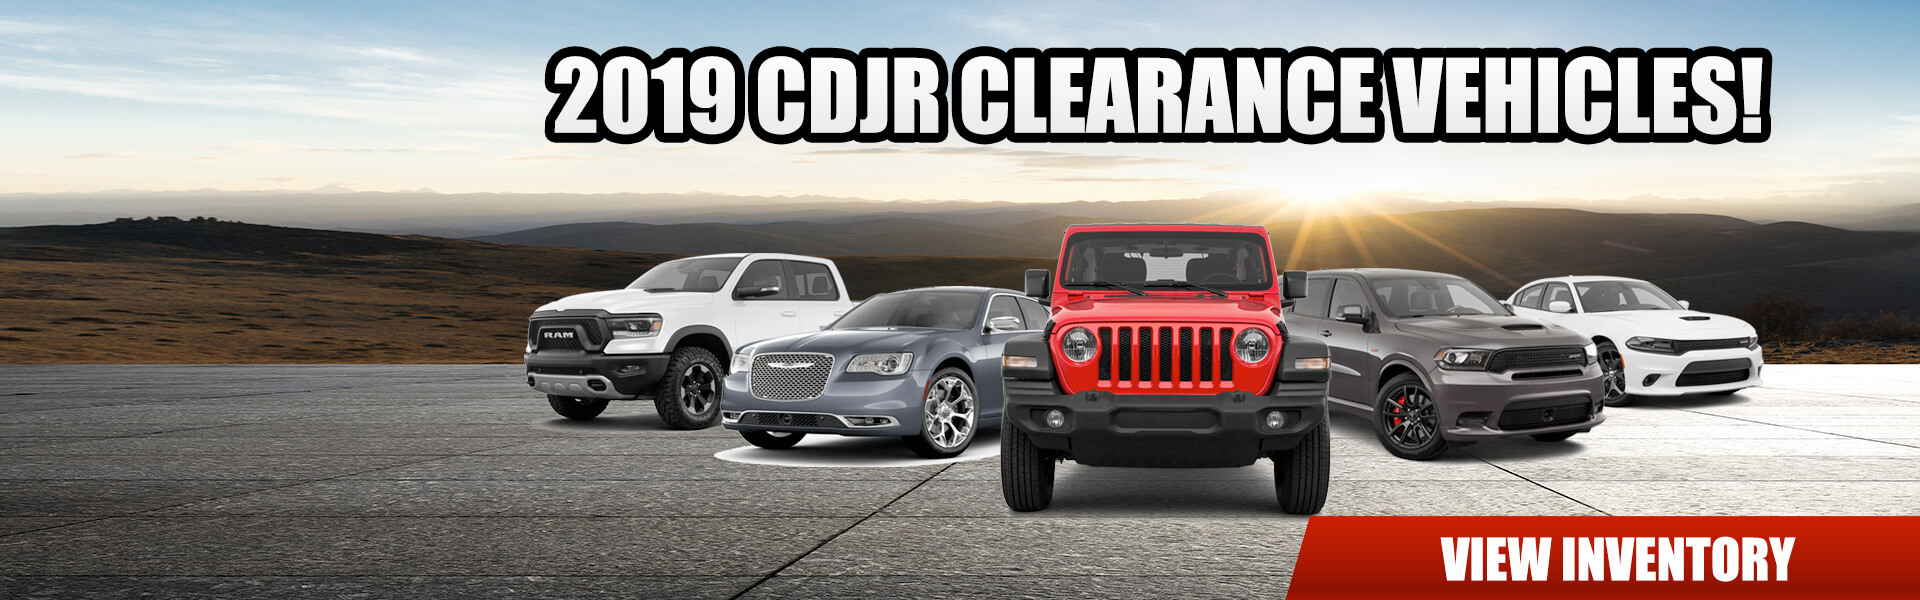 2019 Clearance Vehicles